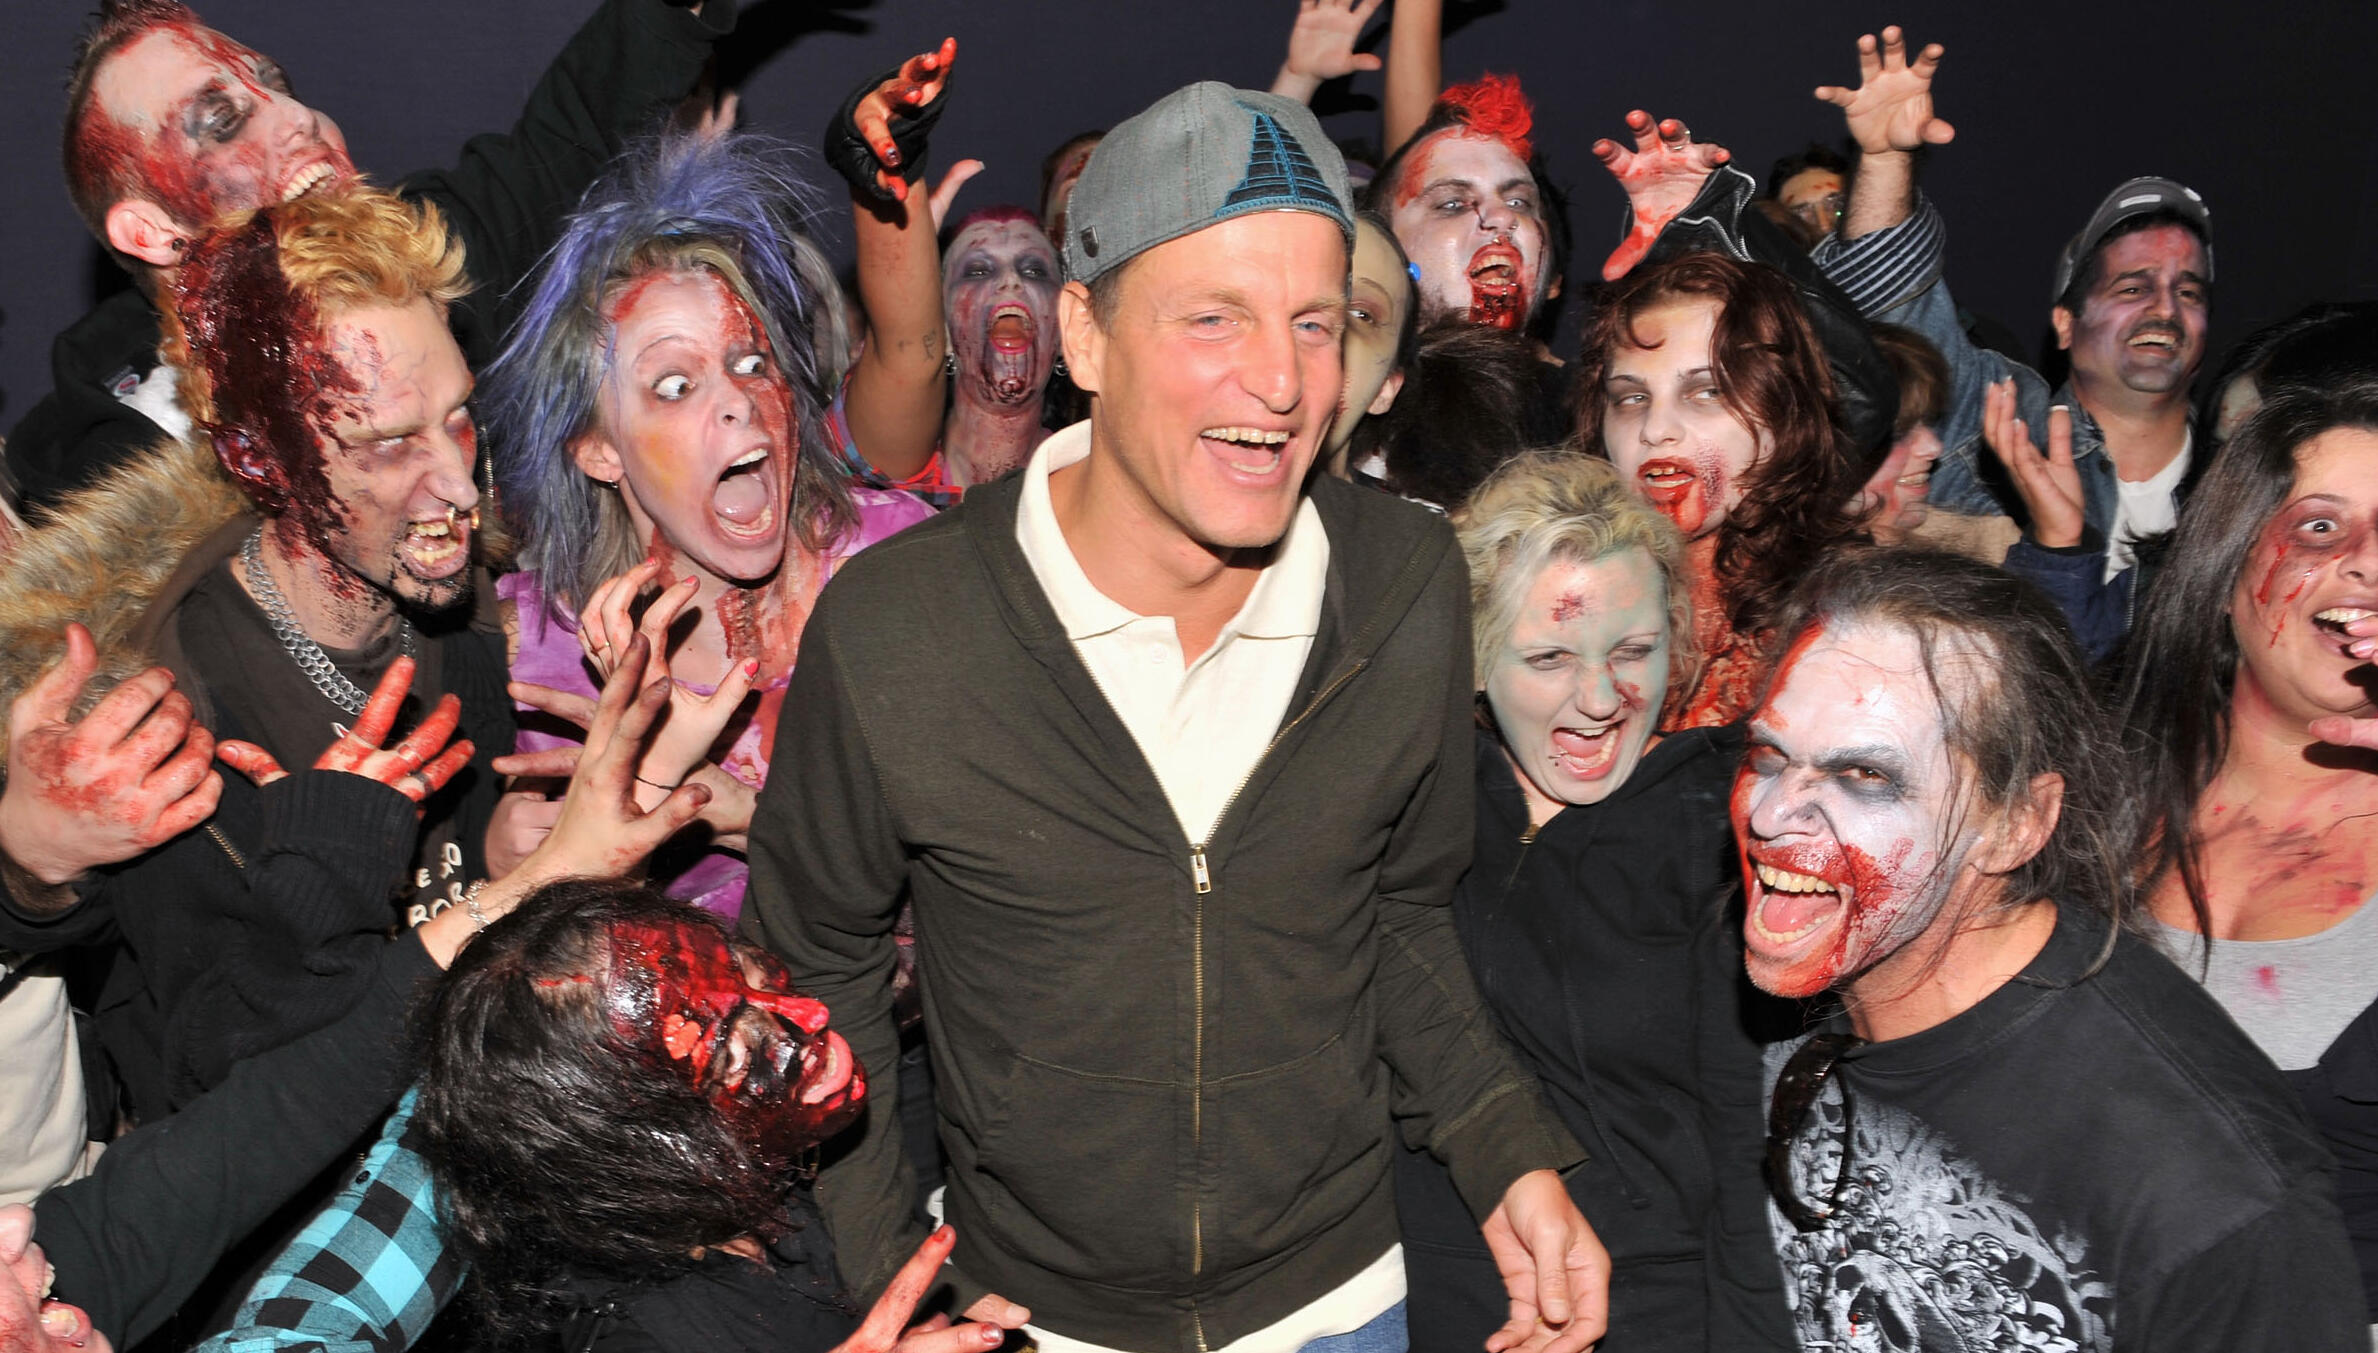 'Zombieland 2' Release Date Announced | My 100